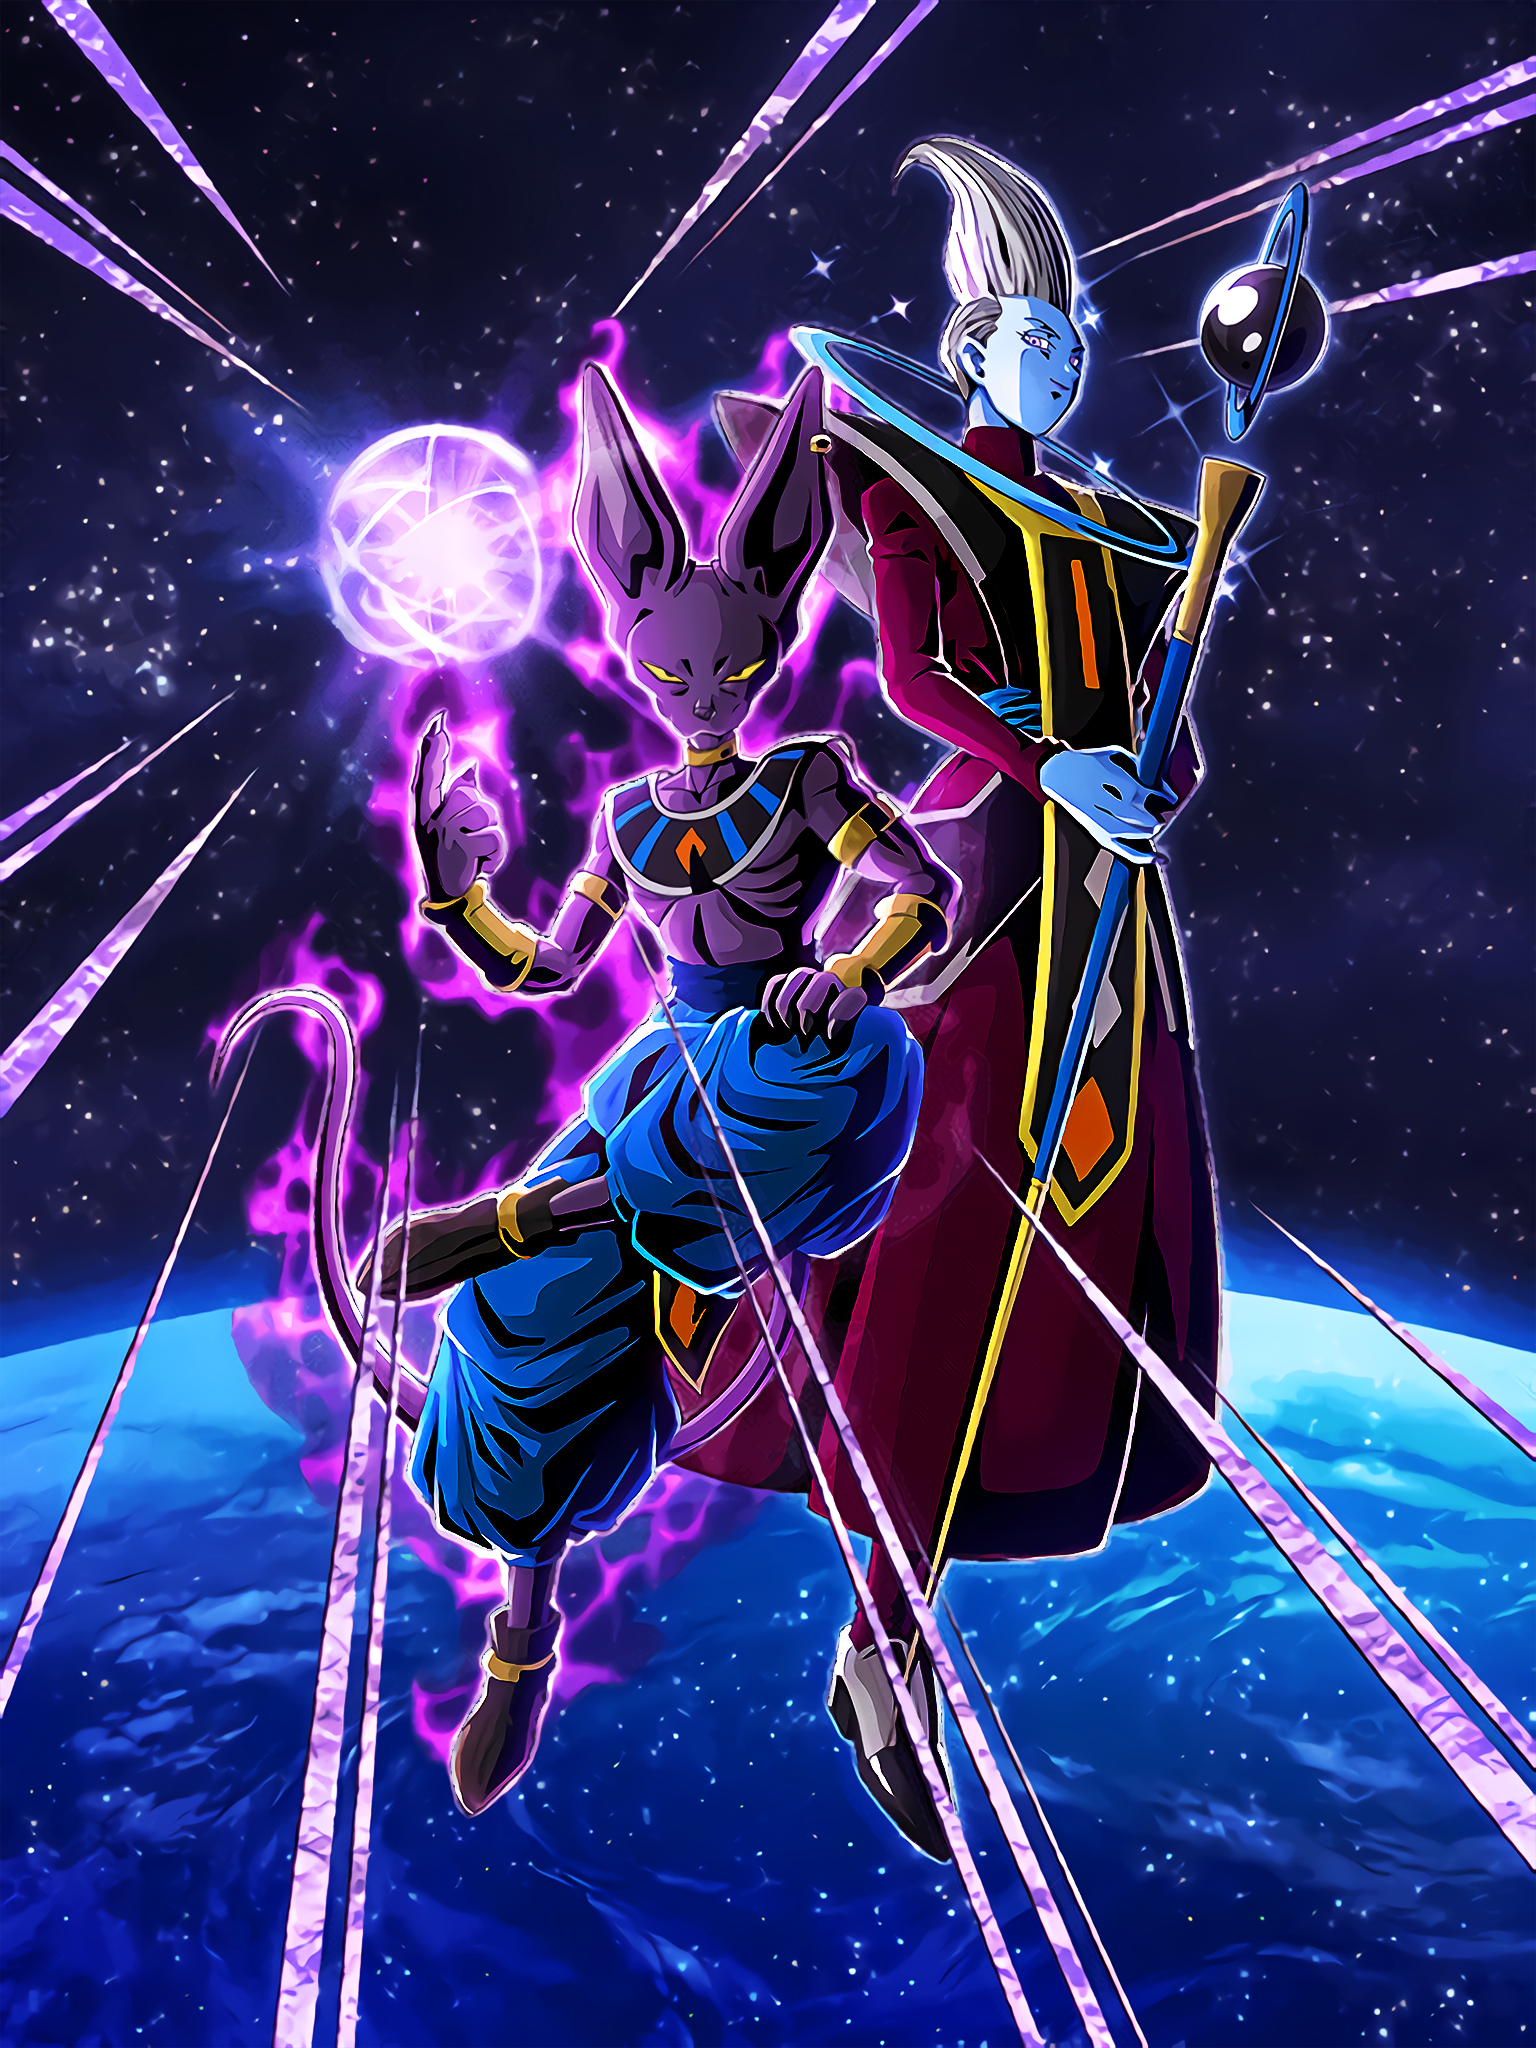 Lord Beerus Wallpapers Top Free Lord Beerus Backgrounds